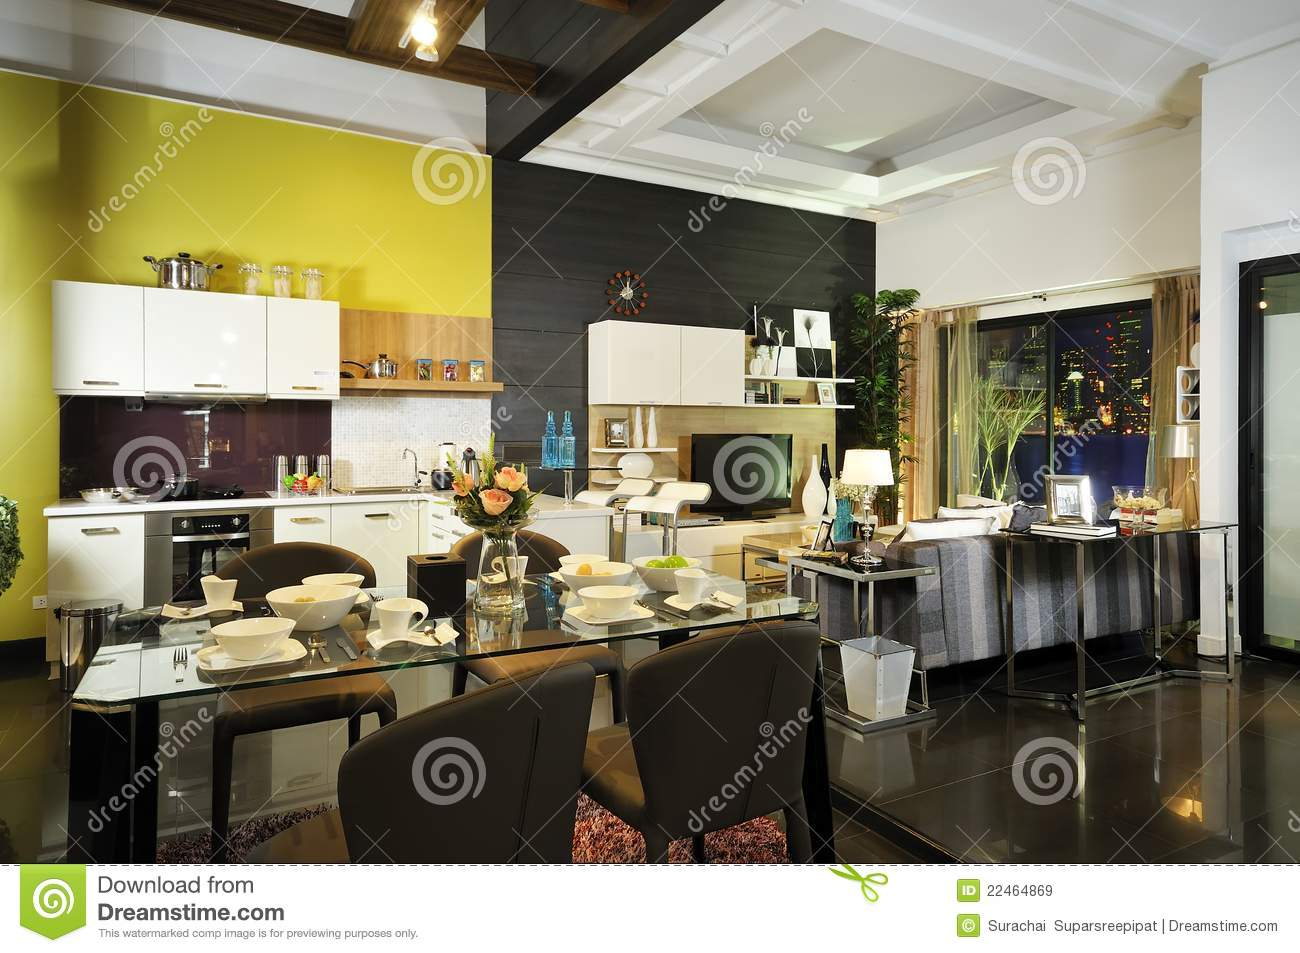 Modern decor Living and dining room 01